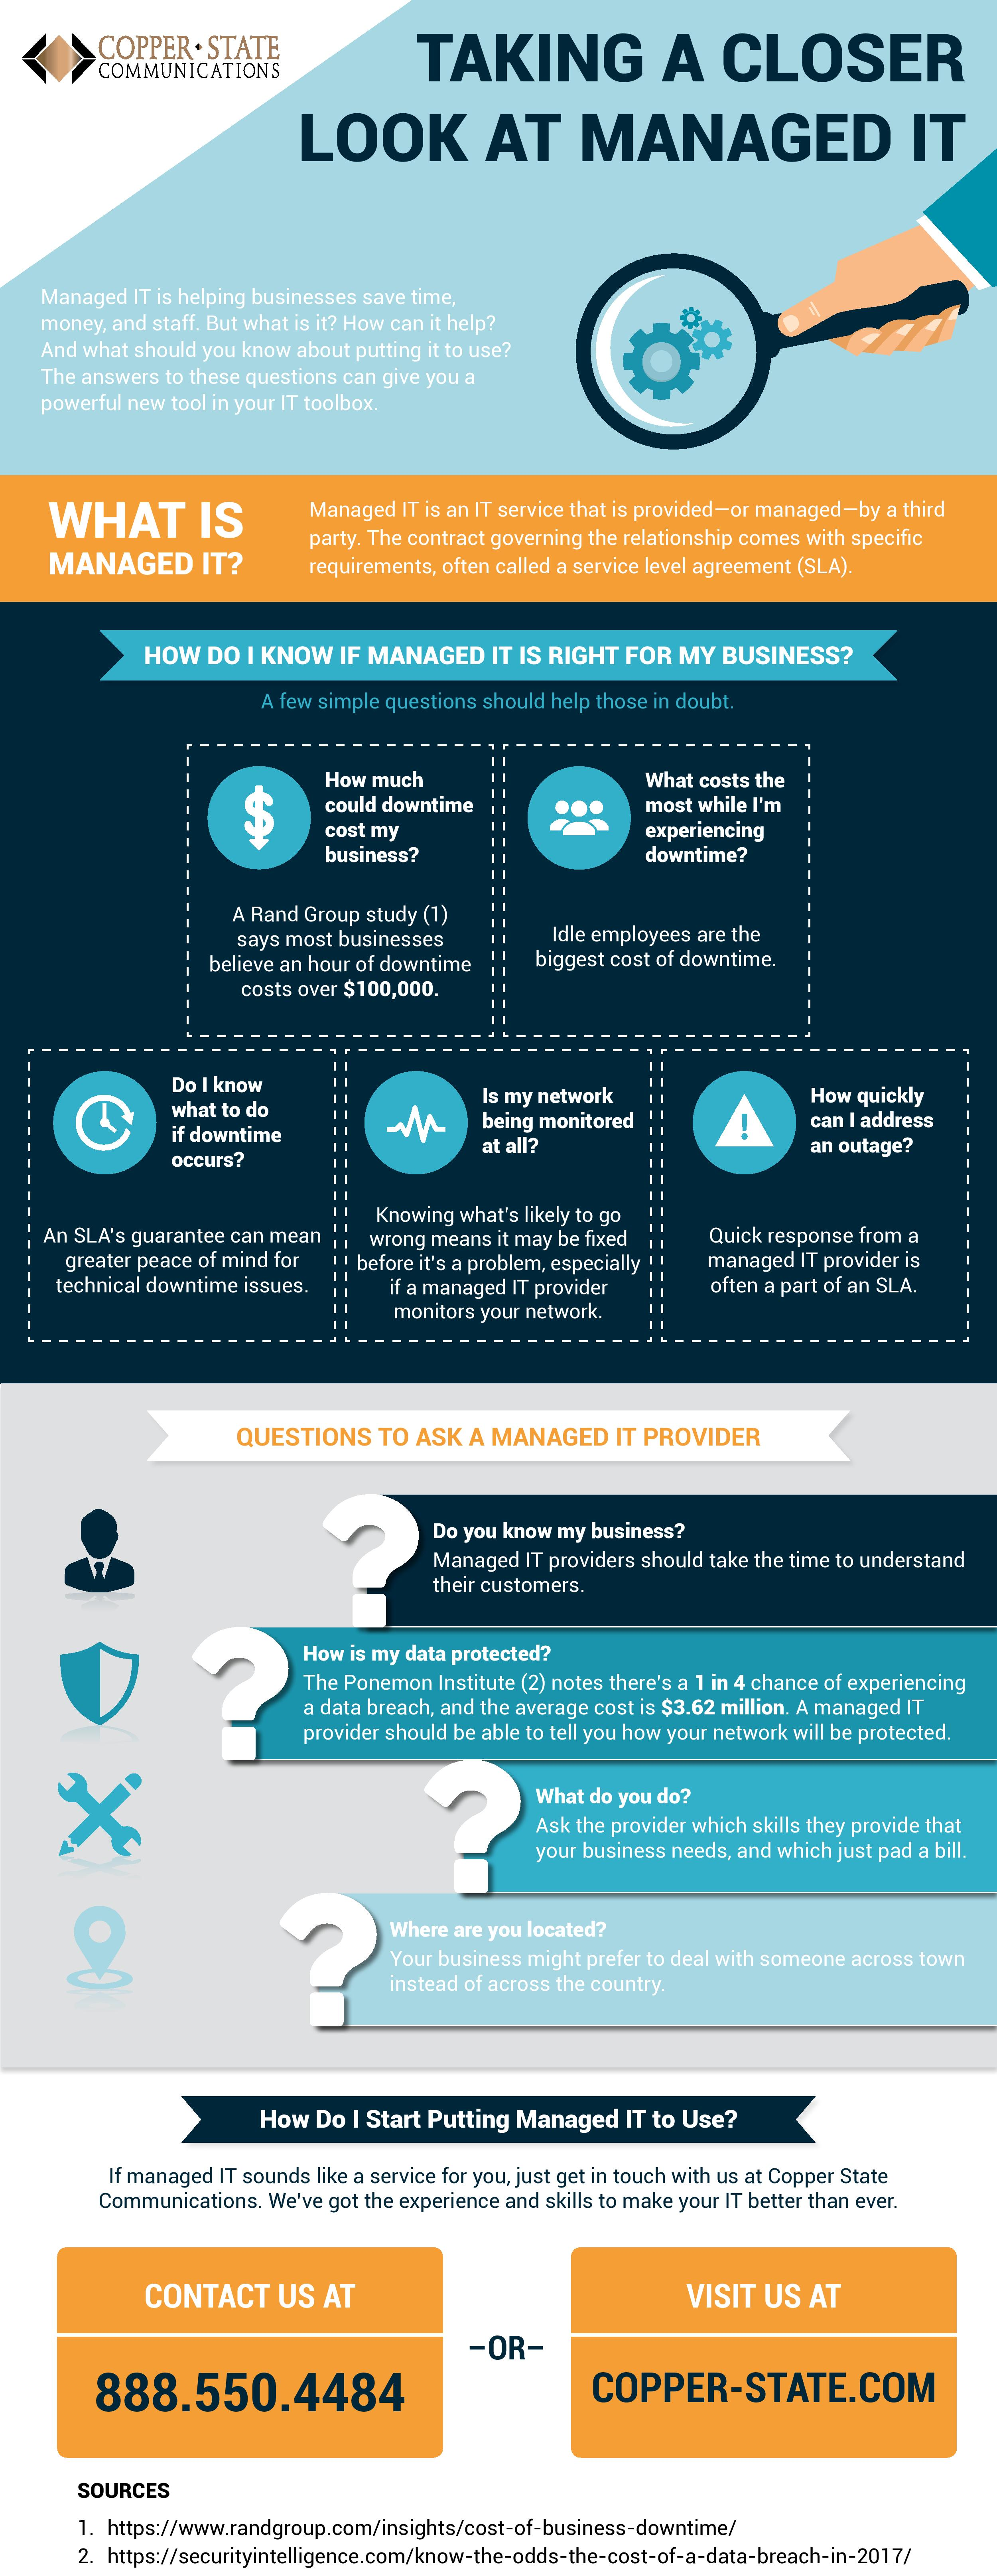 This infographic explains what managed IT is, and how it can benefit your business.